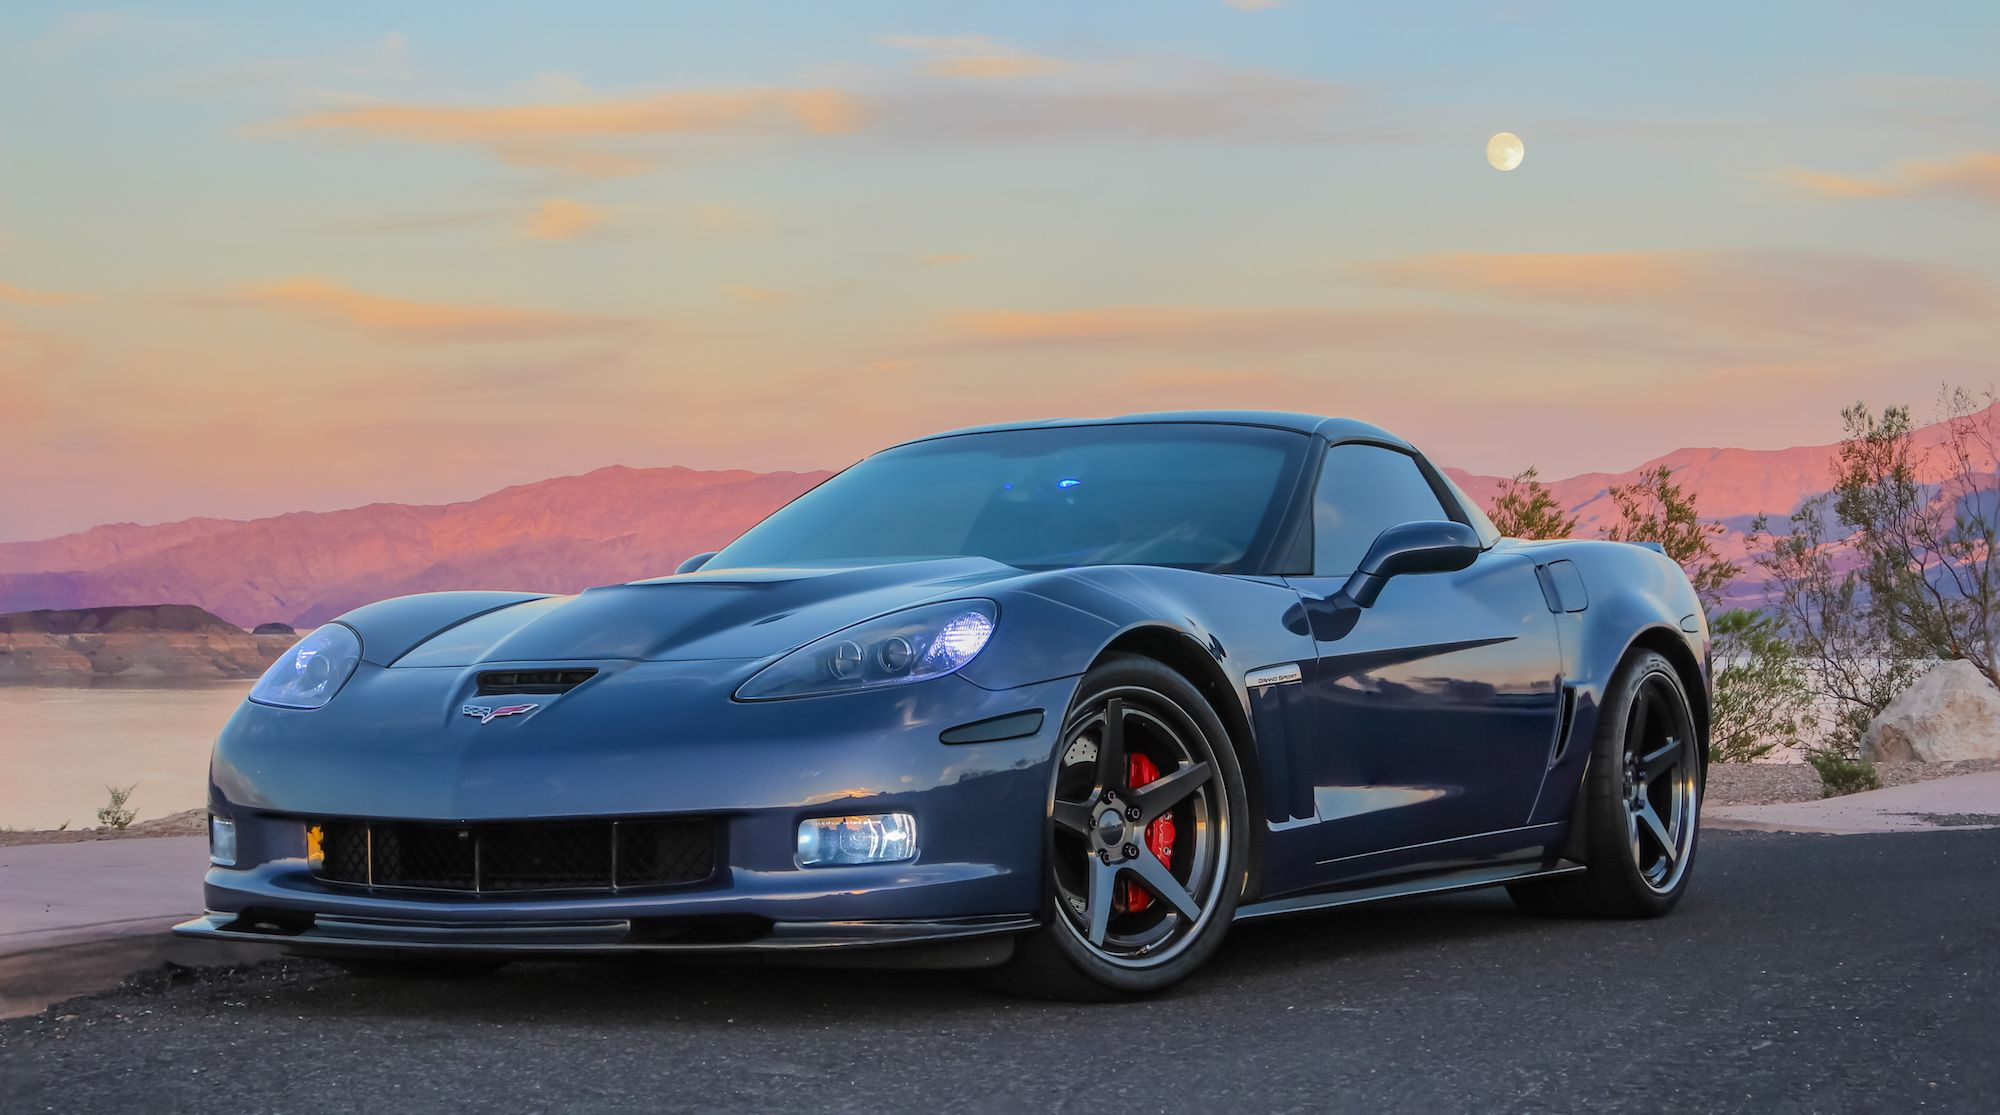 Brian's C6 Corvette Grand Sport 4LT is equipped with a ZR1